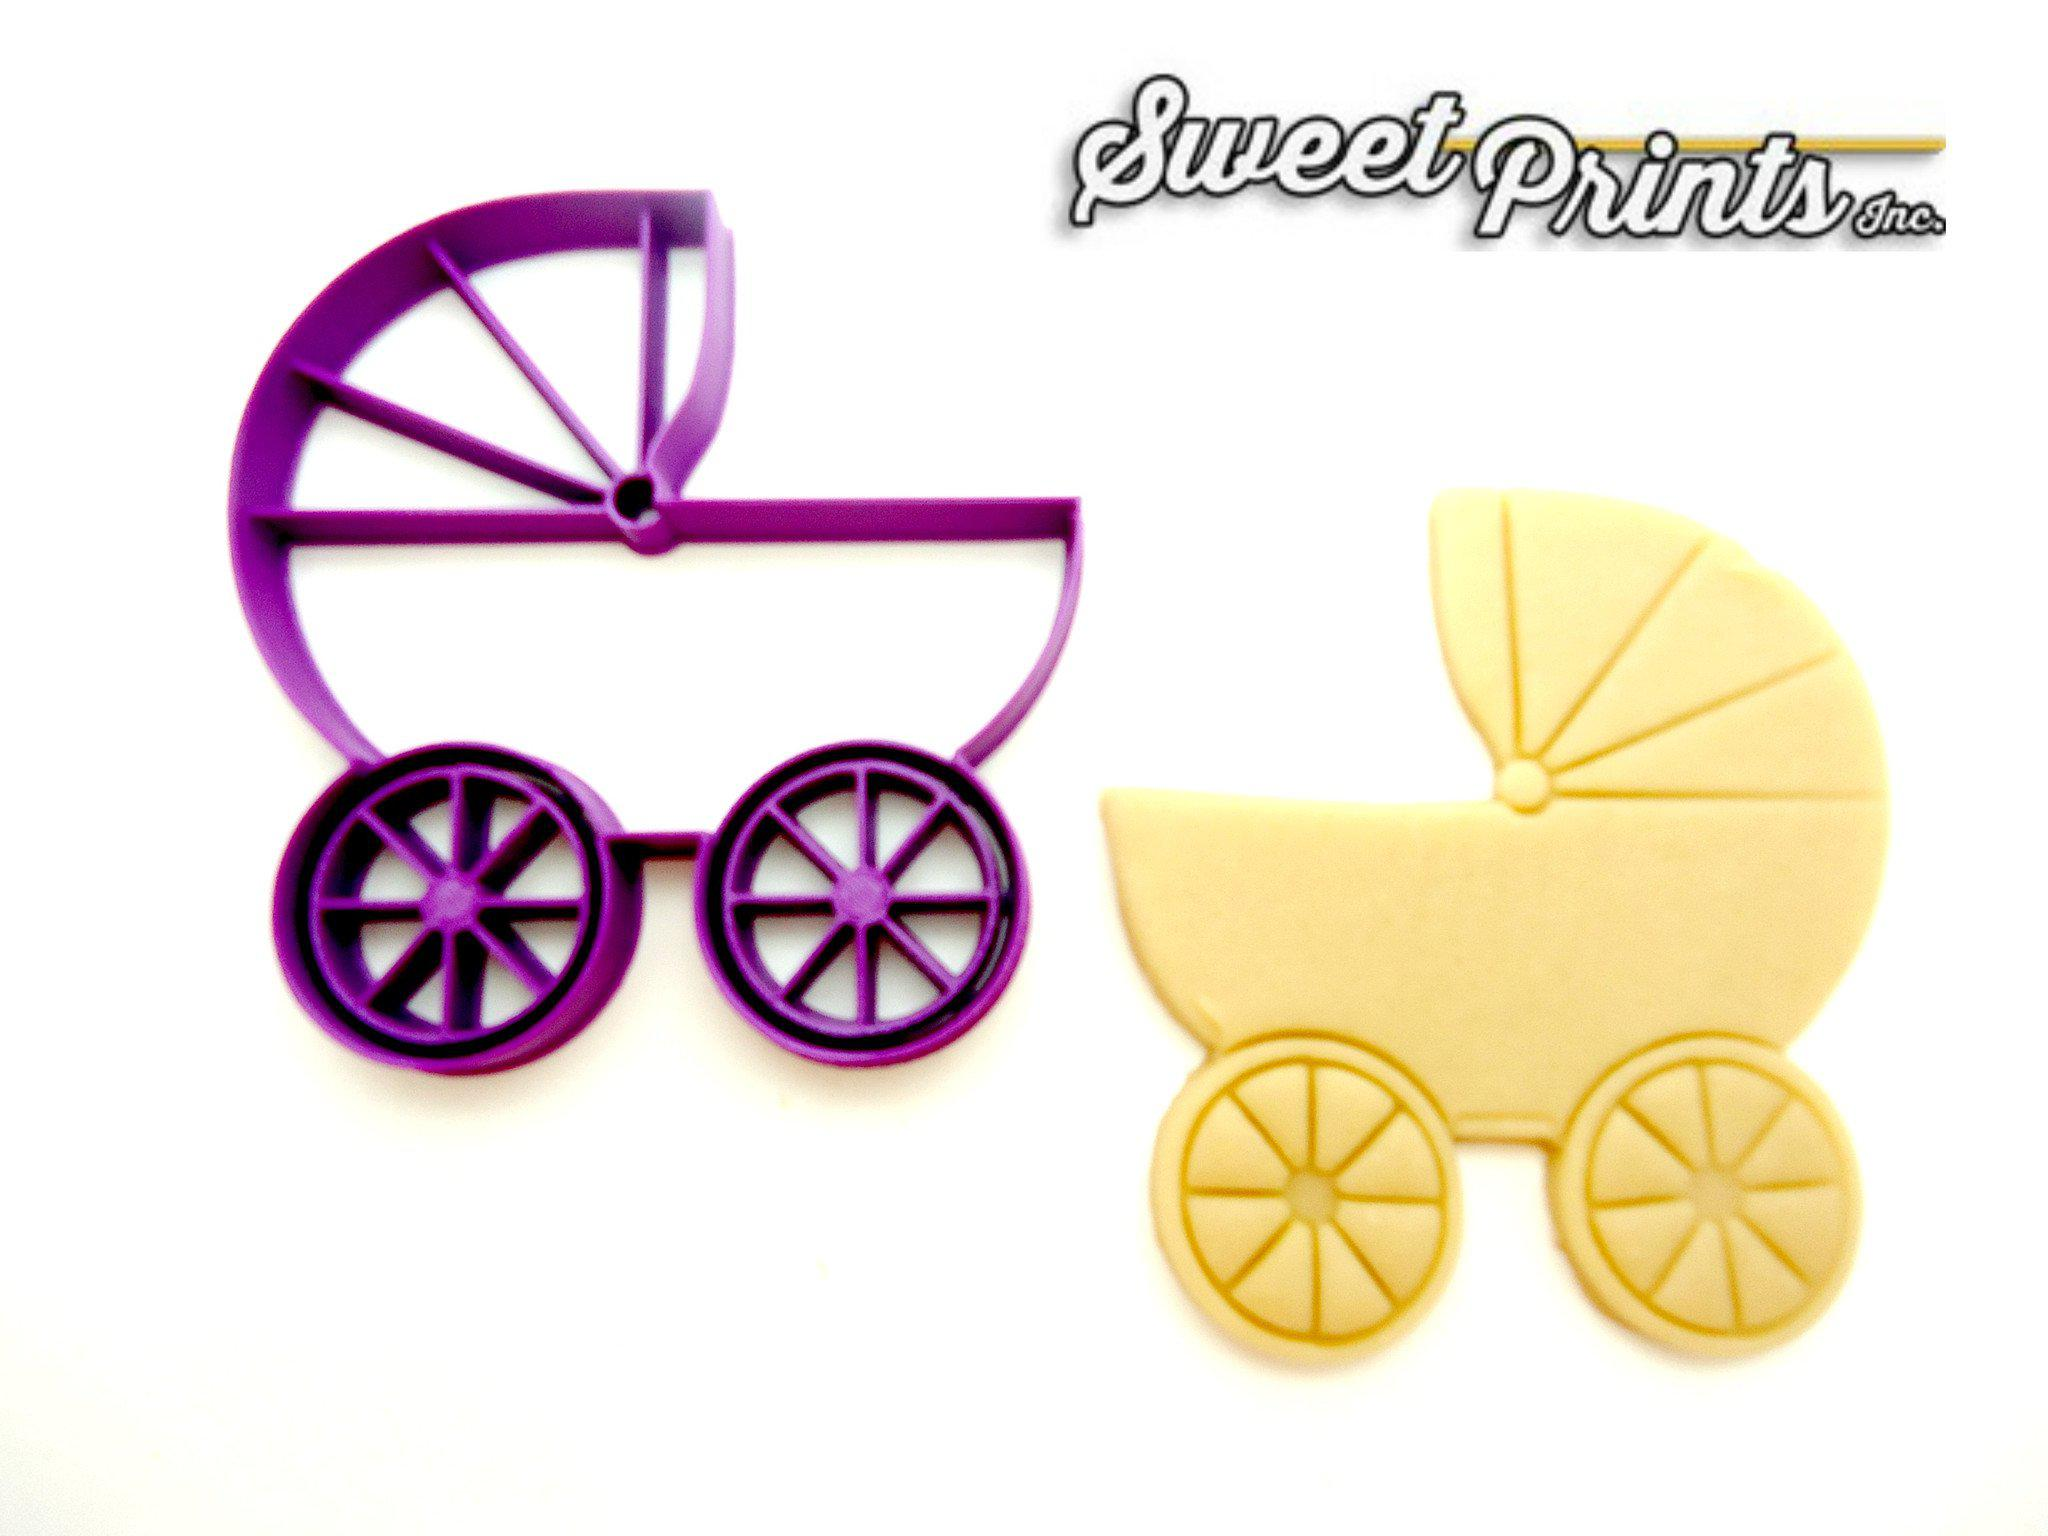 Baby Carriage Cookie Cutter/Dishwasher Safe - Sweet Prints Inc.